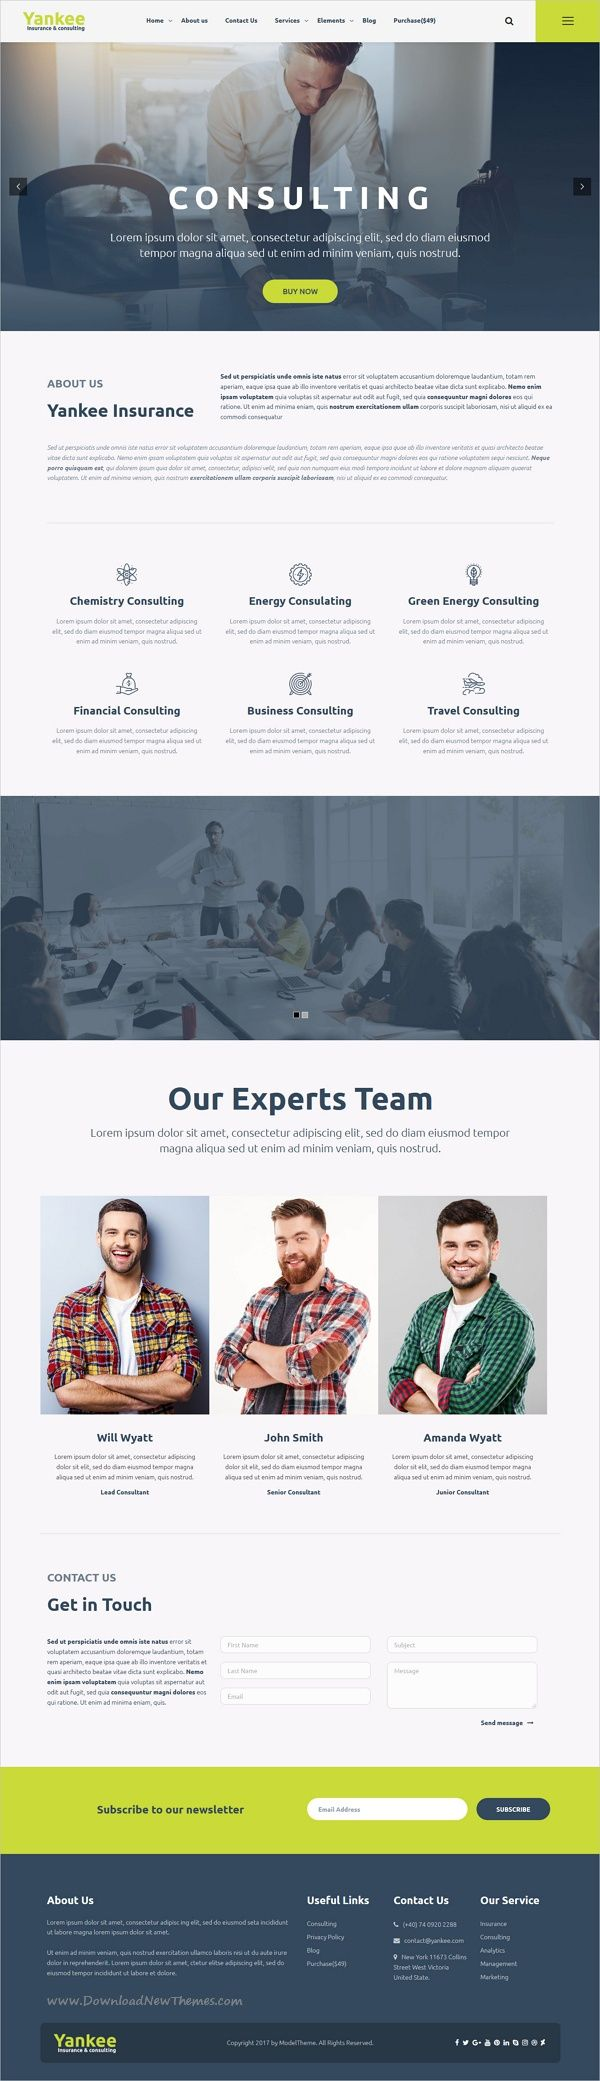 Yankee is clean and modern design 3in1 responsive #WordPress theme for insurance and #business consulting #firms professional website download now➩ https://themeforest.net/item/yankee-insurance-consulting-wordpress-theme/19745716?ref=Datasata